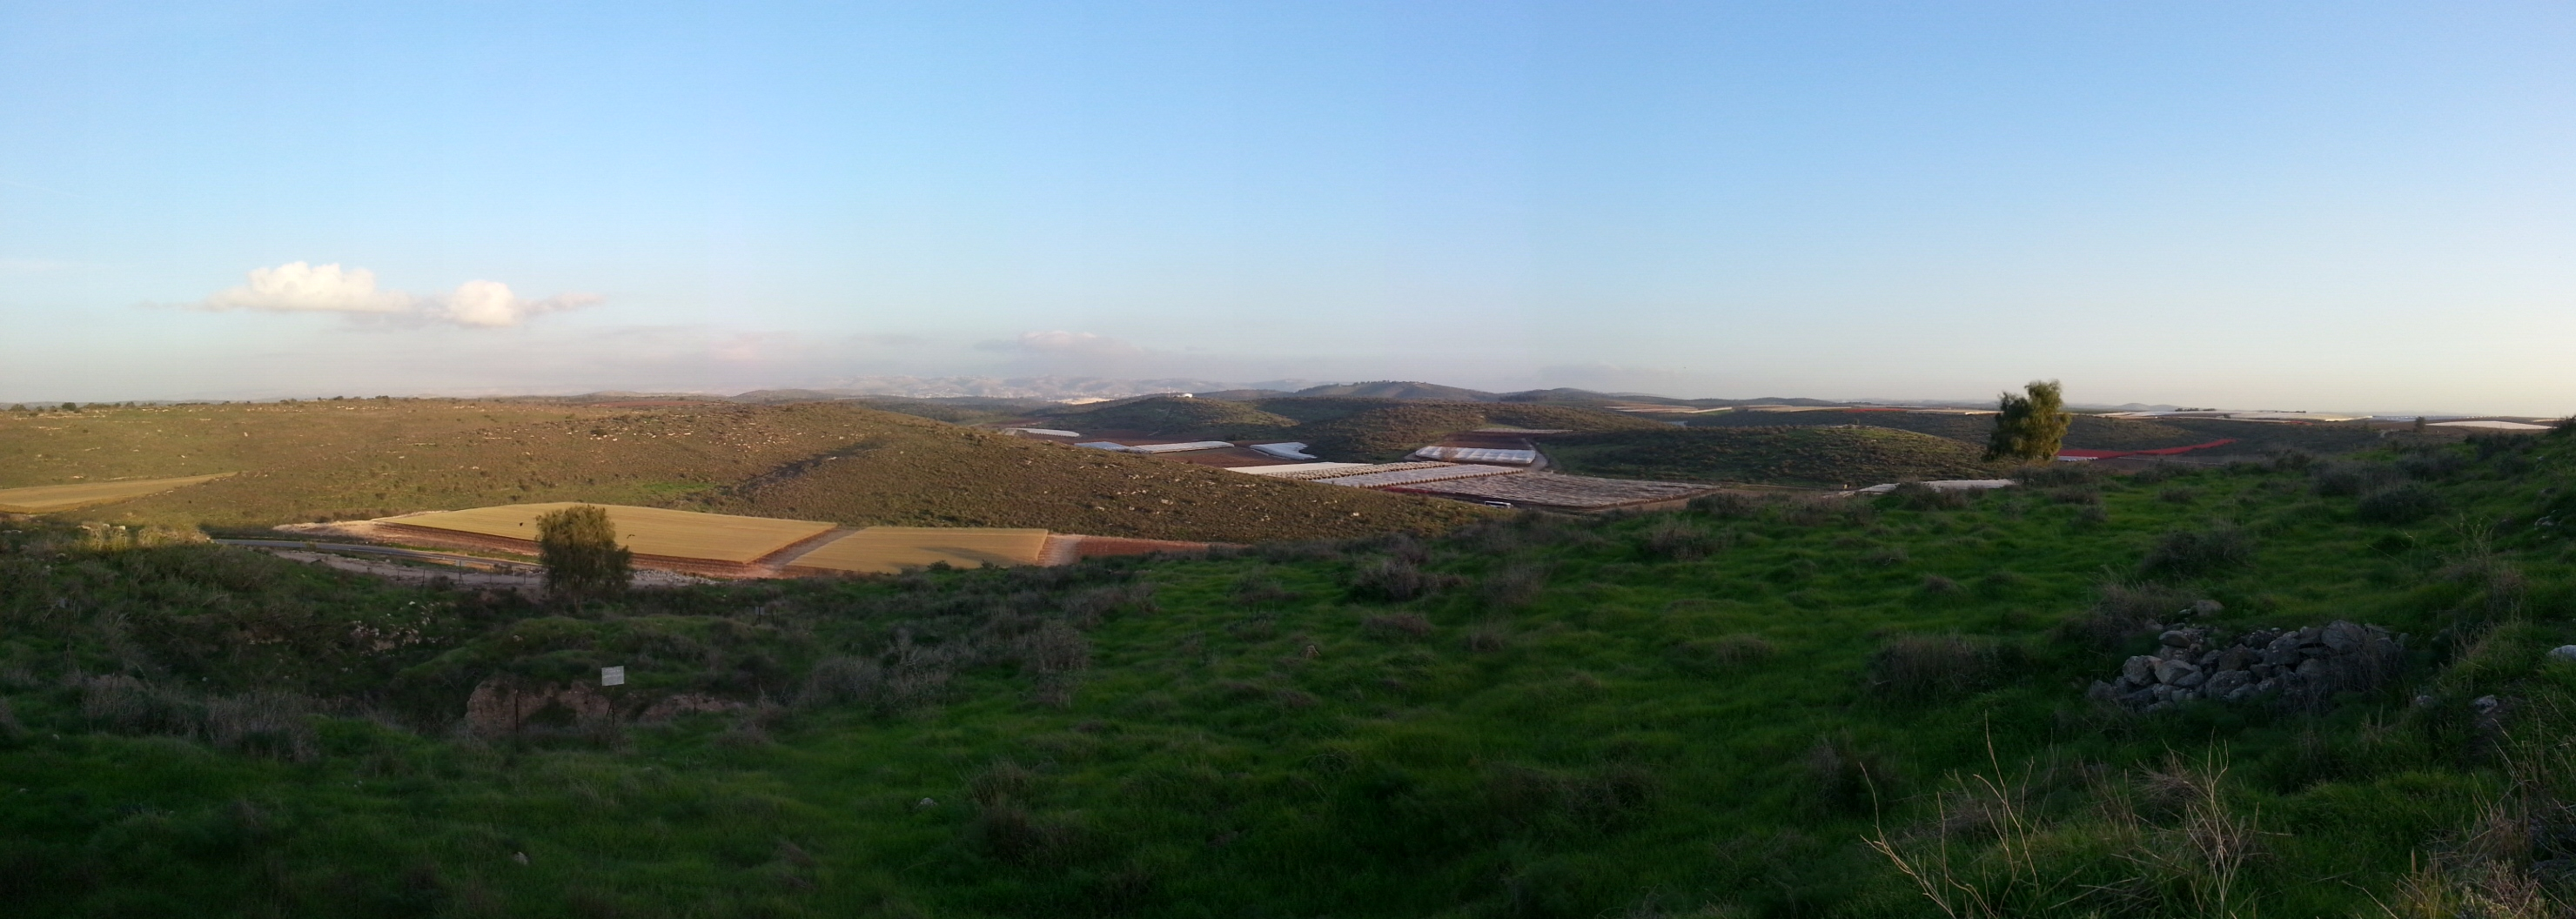 View over the Judean Lowlands (Shfela) from Tel Lachish